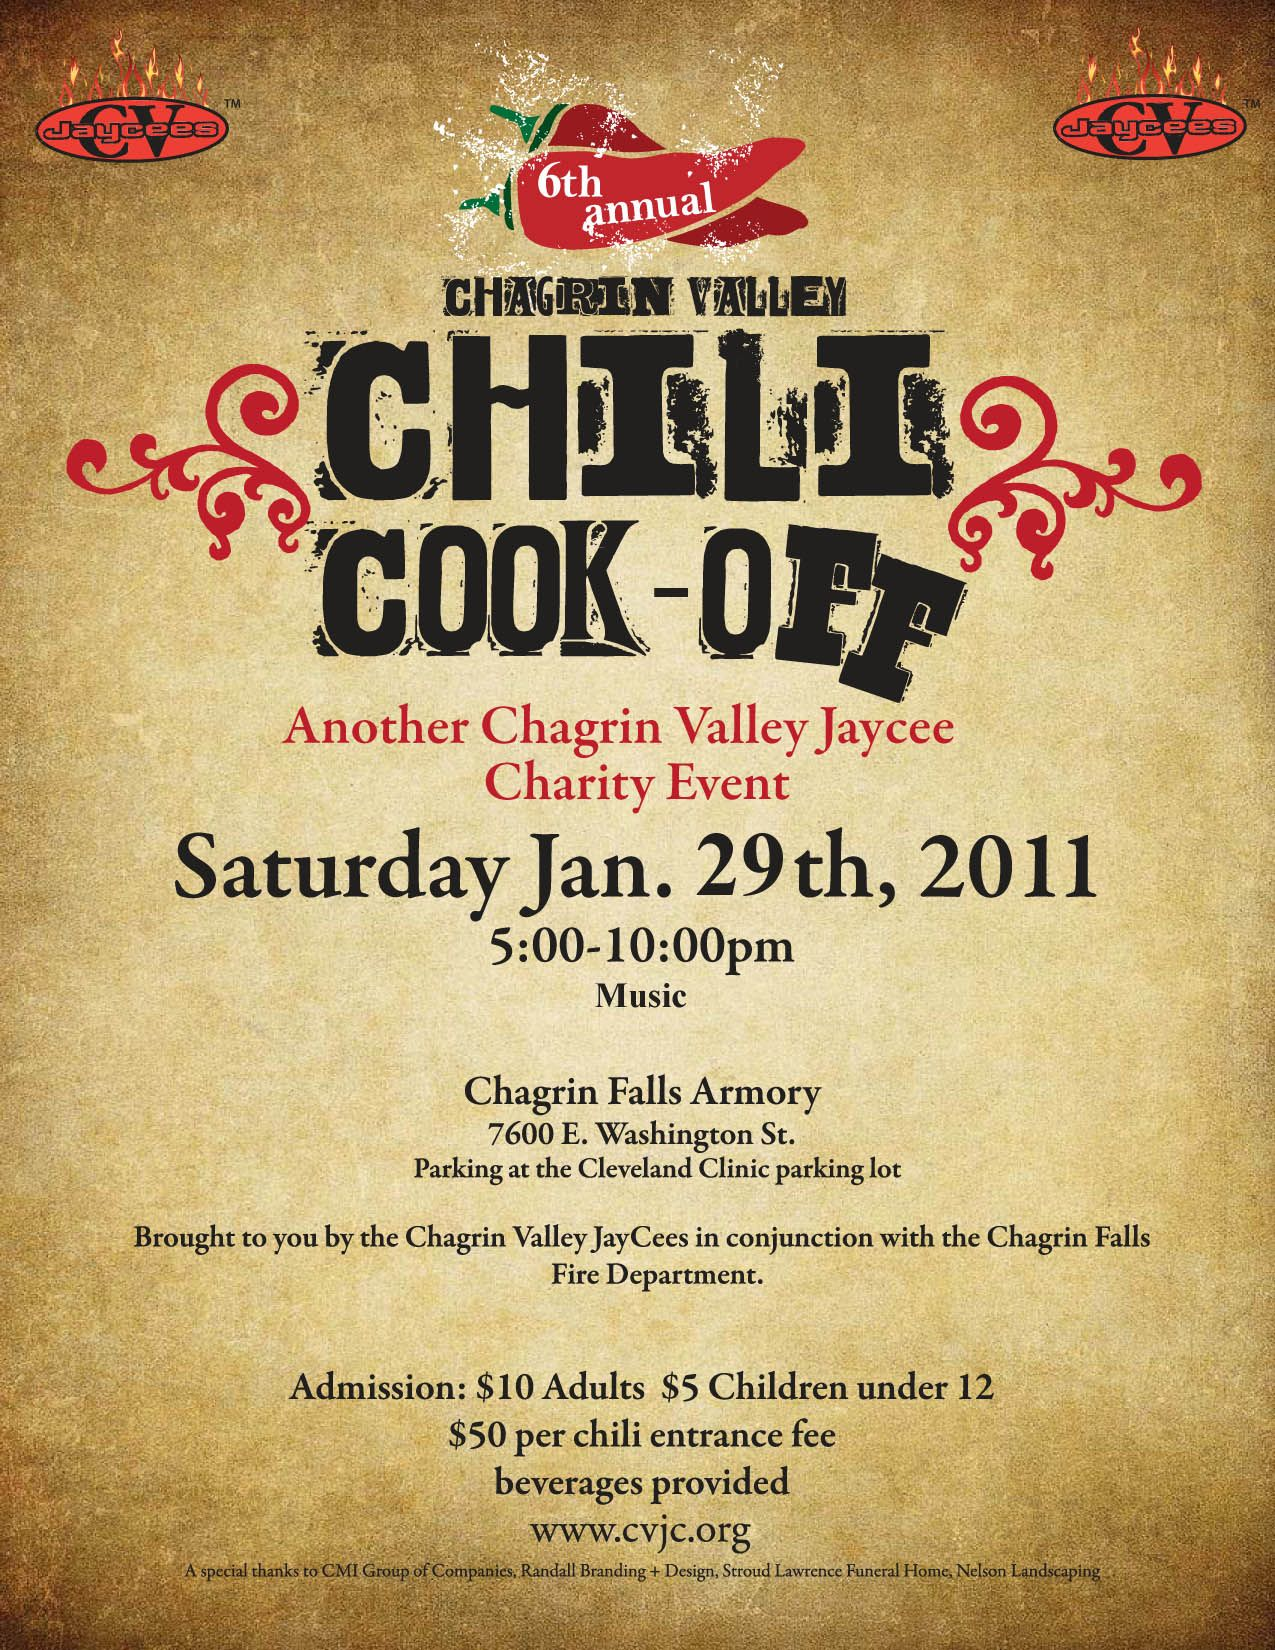 Chili Cook Off Flyer Template Free Printable WOW. Image